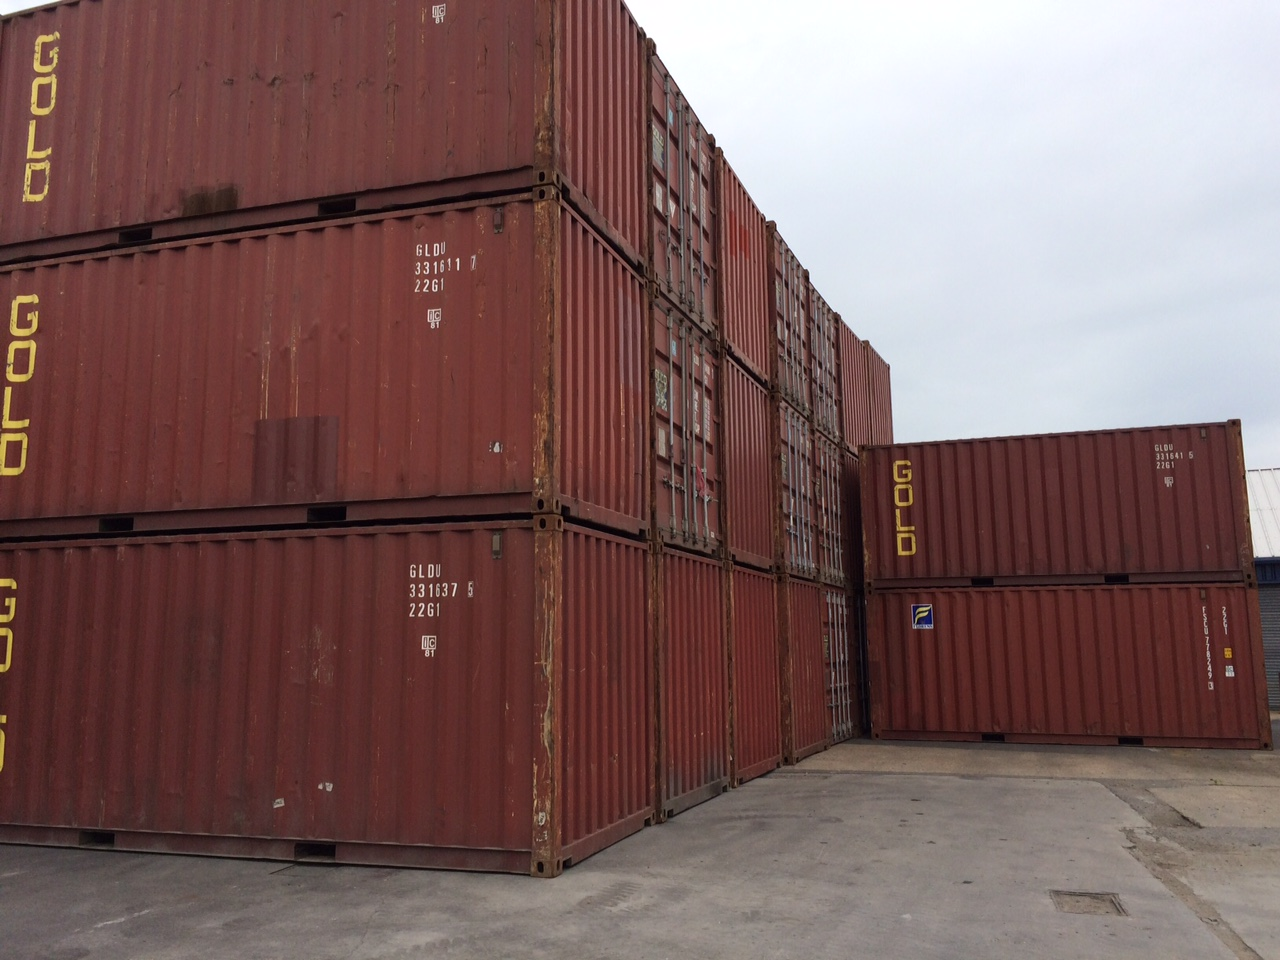 Used 20ft Storage Container For Sale From Only 1225 & Used Storage Container - Listitdallas